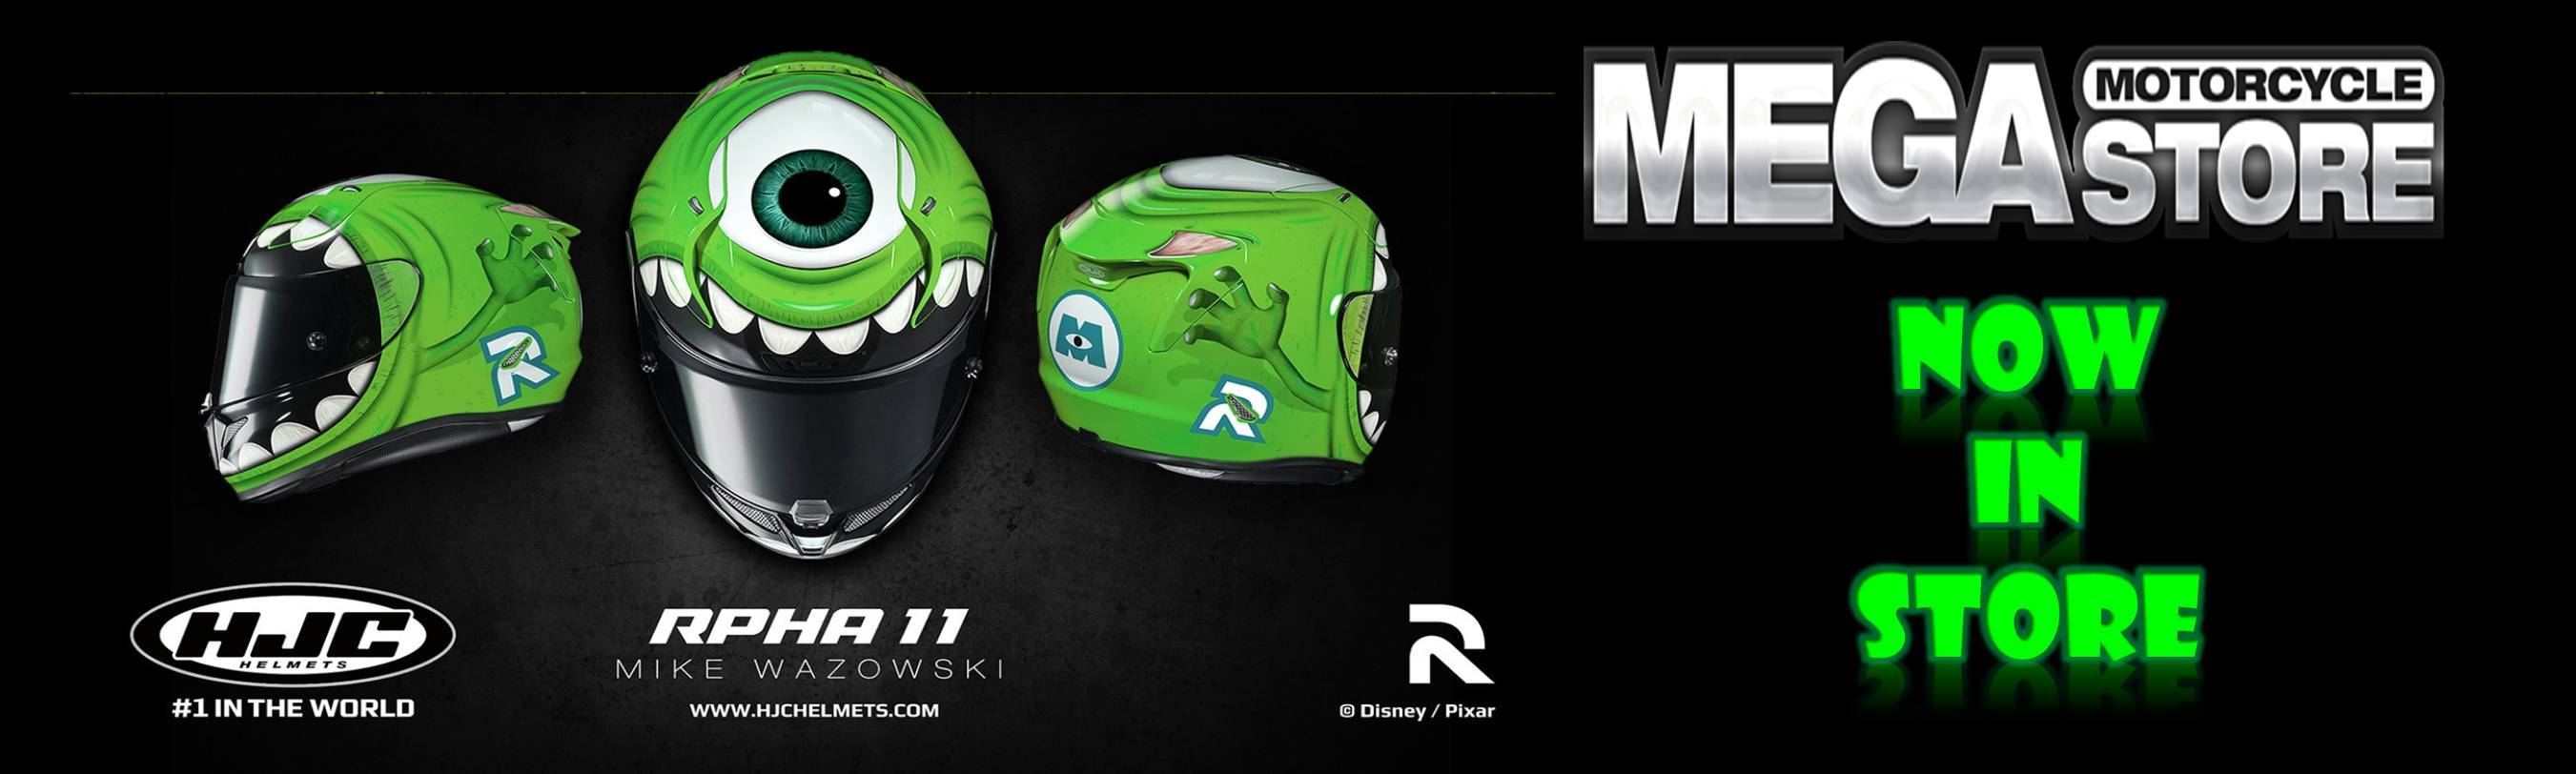 HJC RPHA 11 Monsters Inc Disney Pixar Helmet – Mike Wazowski